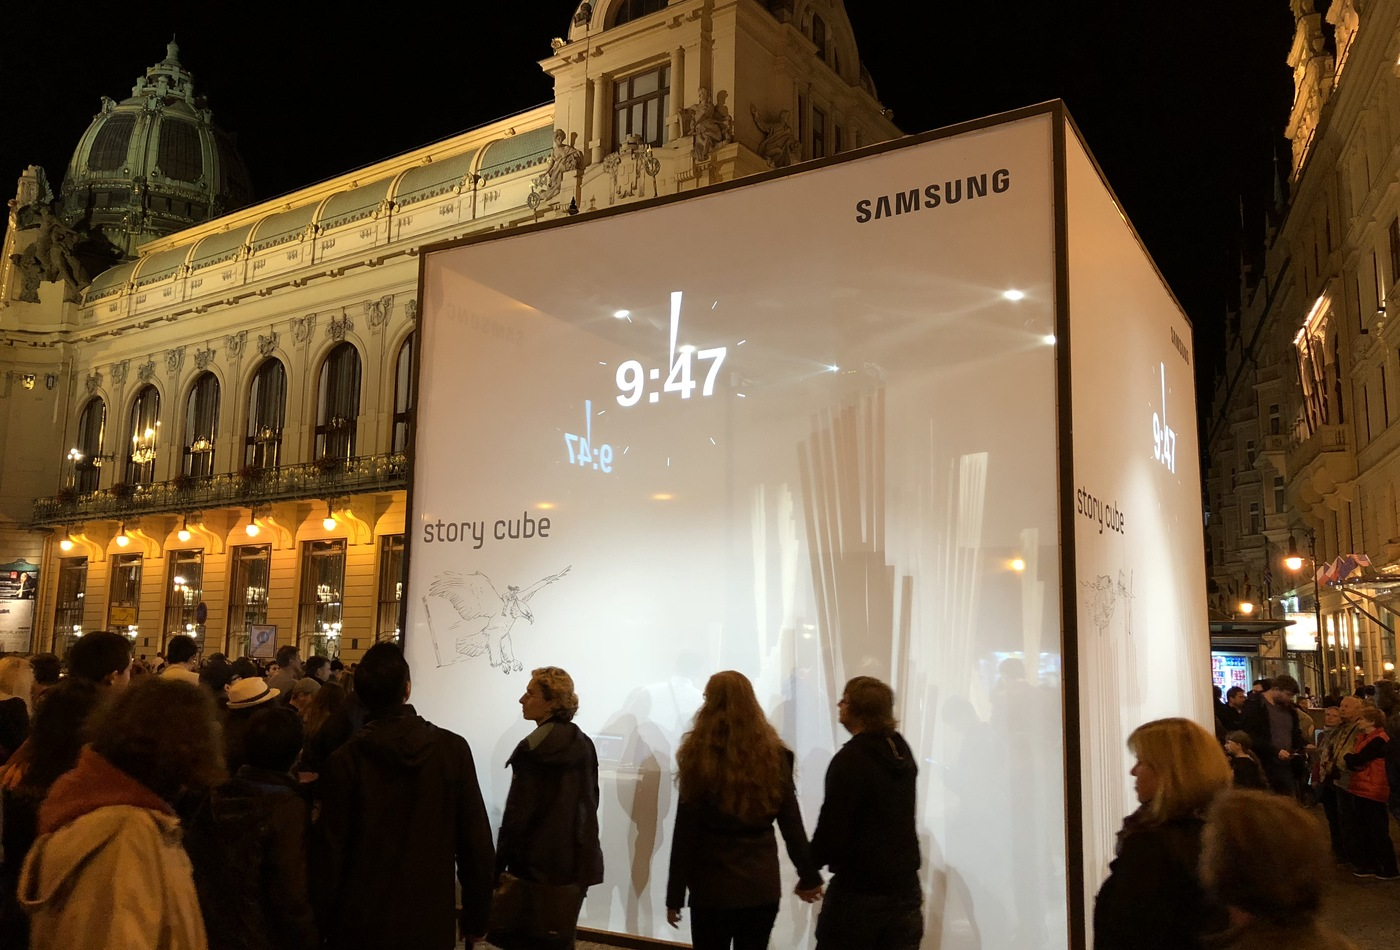 SAMSUNG Story Cube